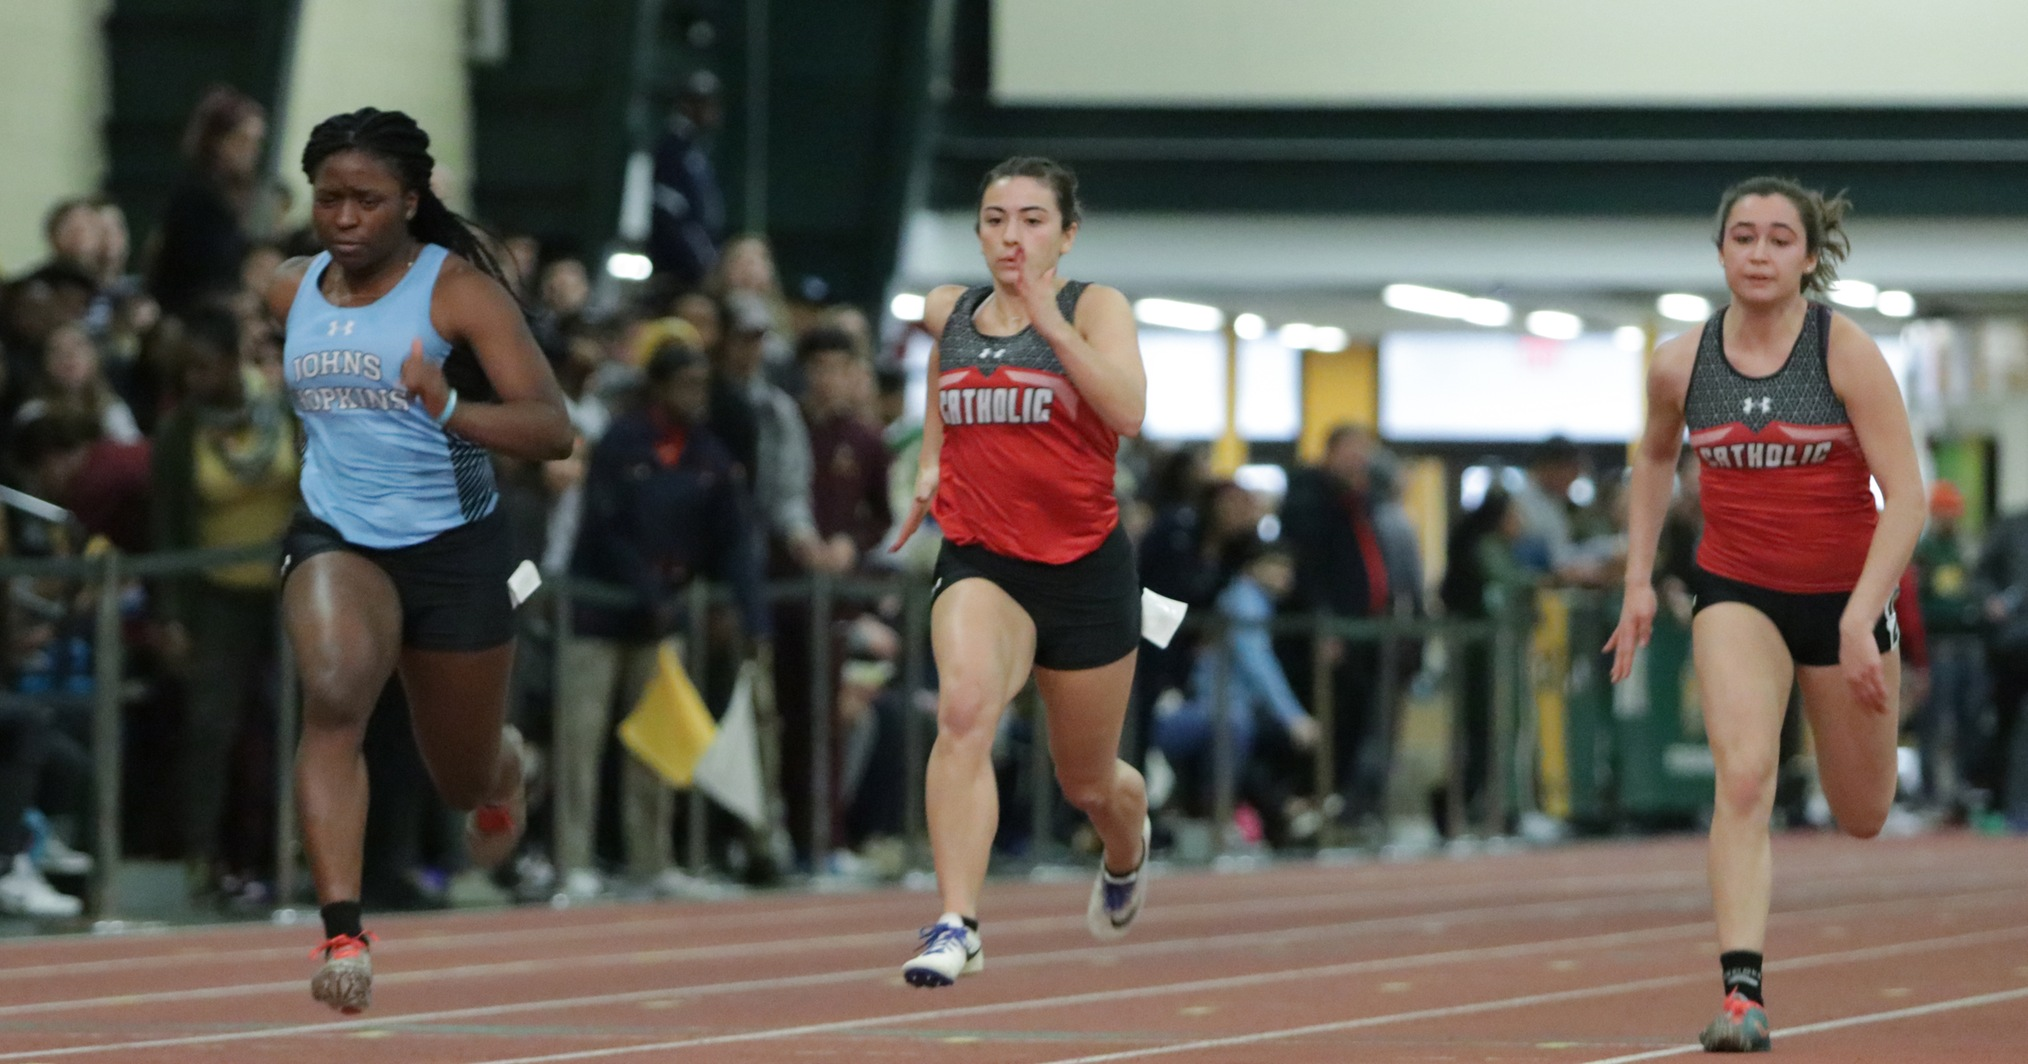 Catholic Competes at the Tufts Final Qualifier